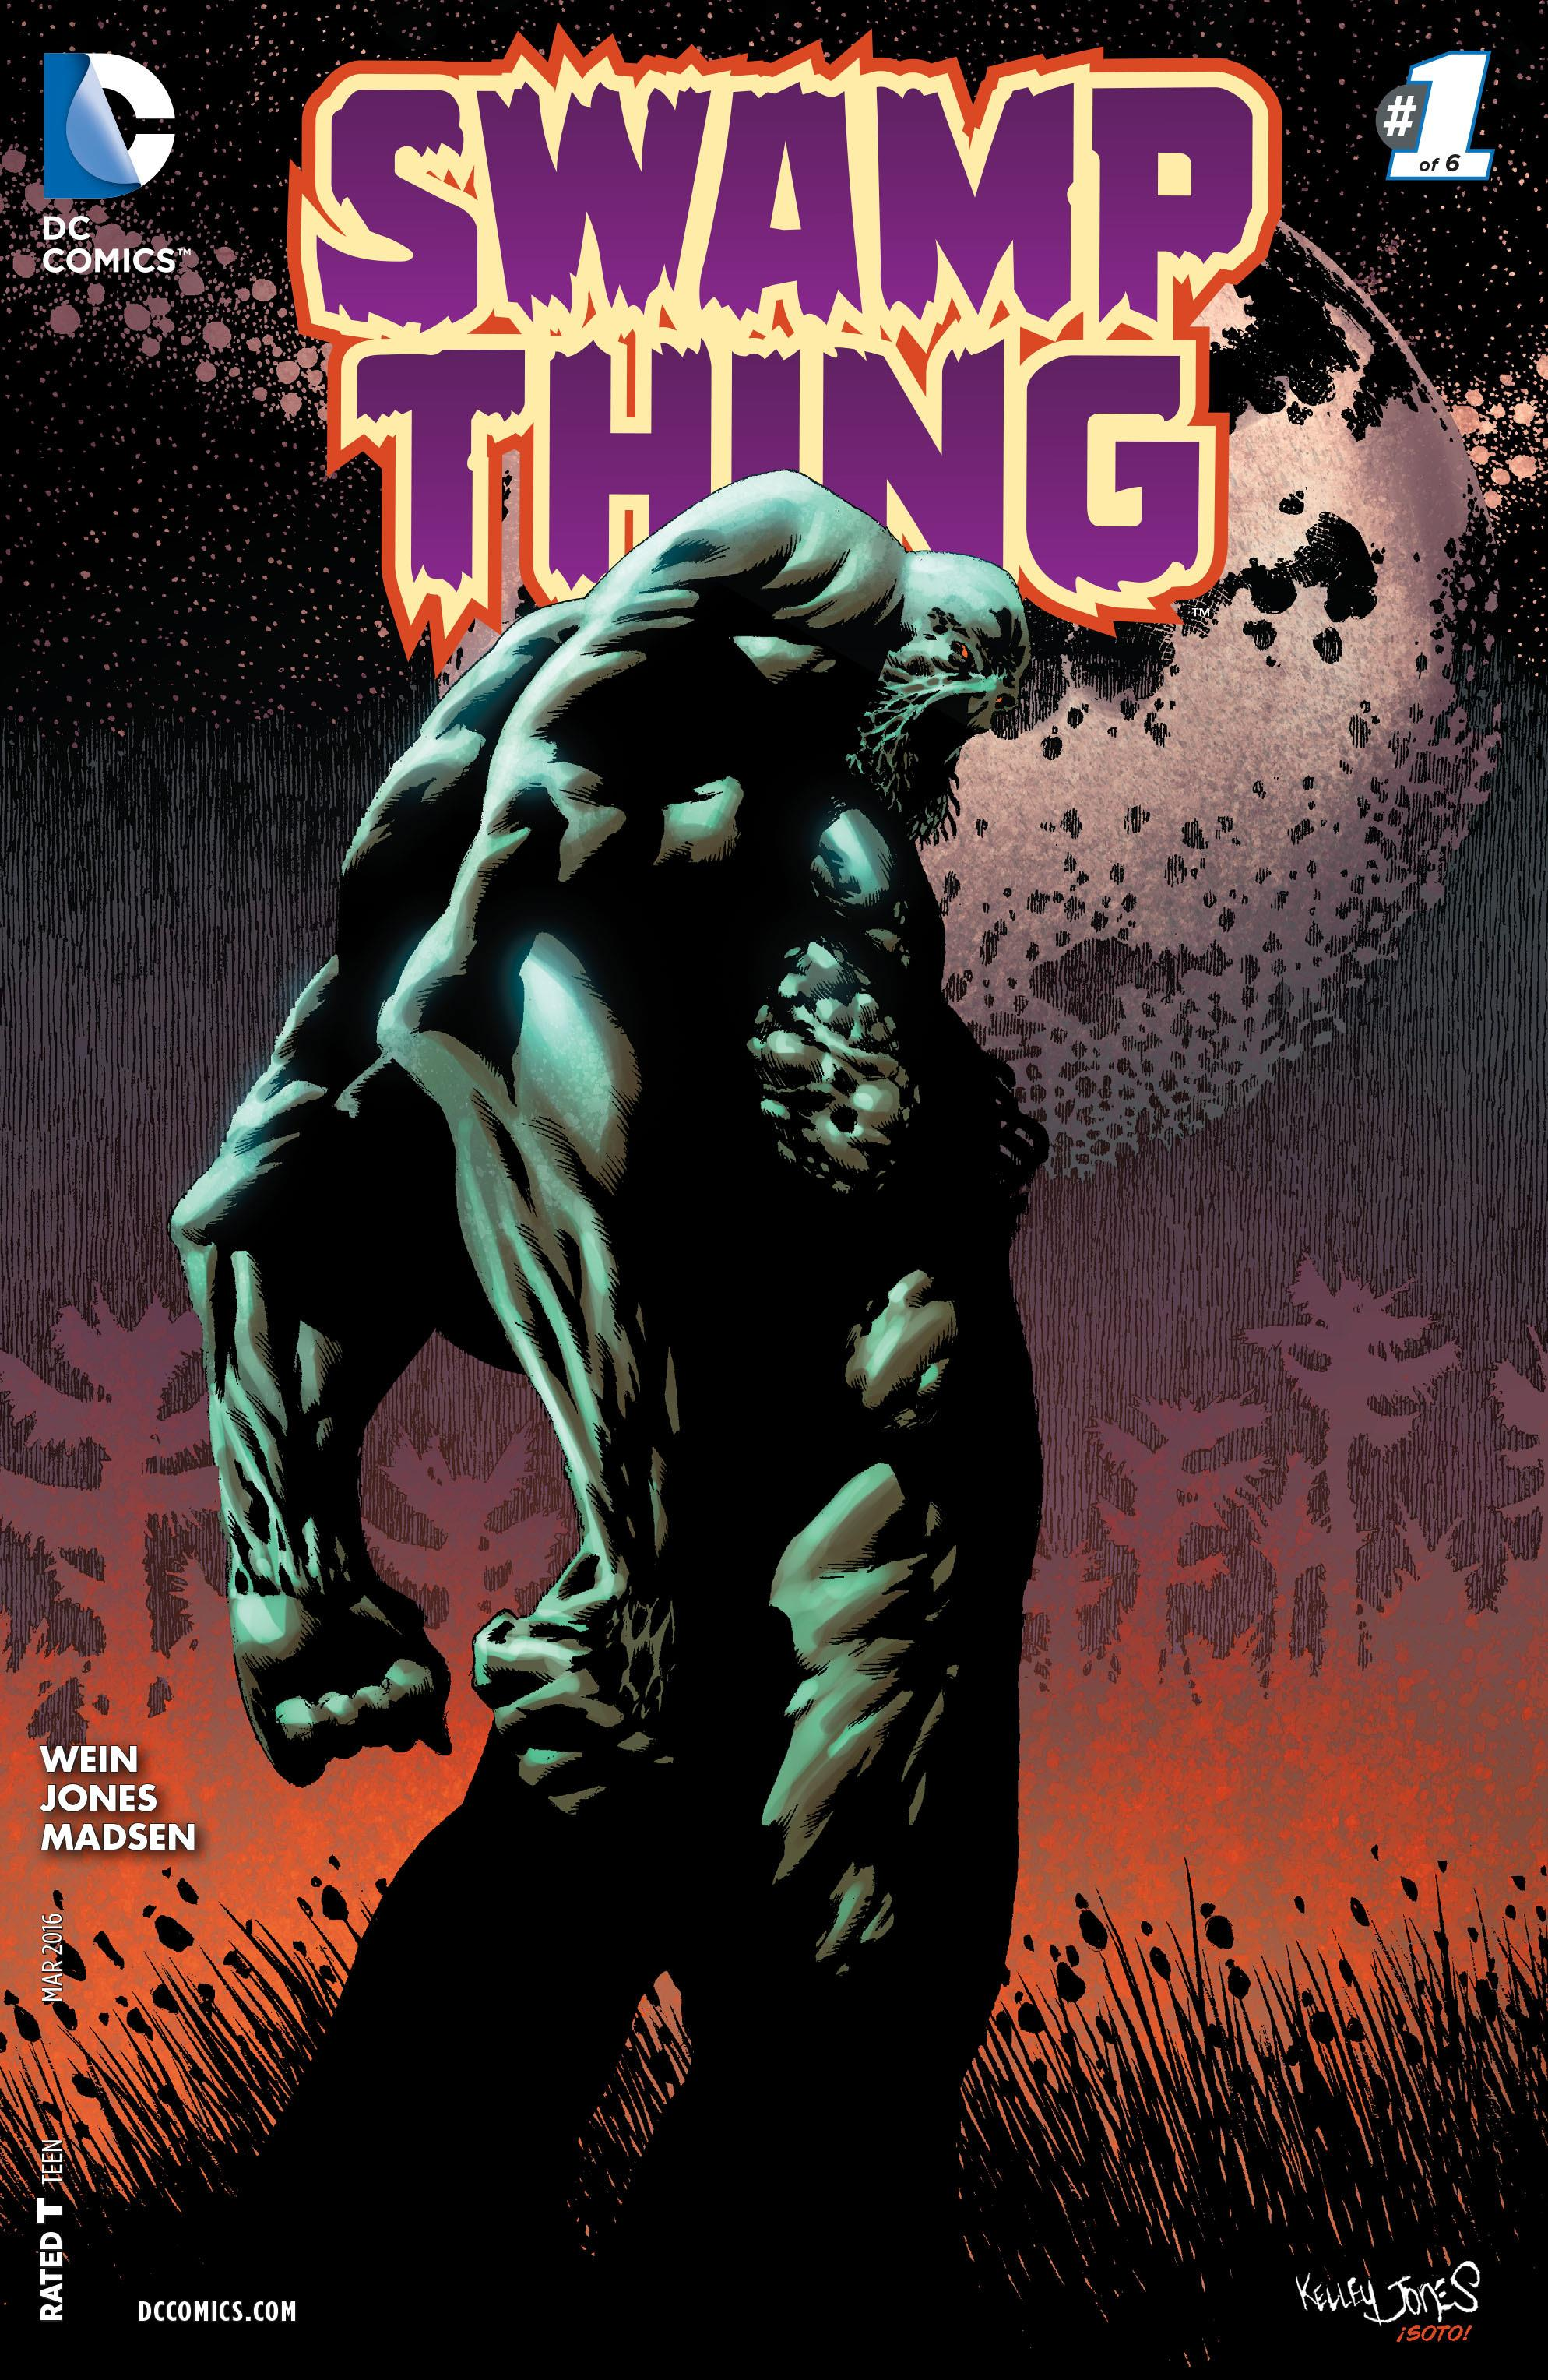 COMIC REVIEW: Swamp Thing #1 - Unfortunate Son